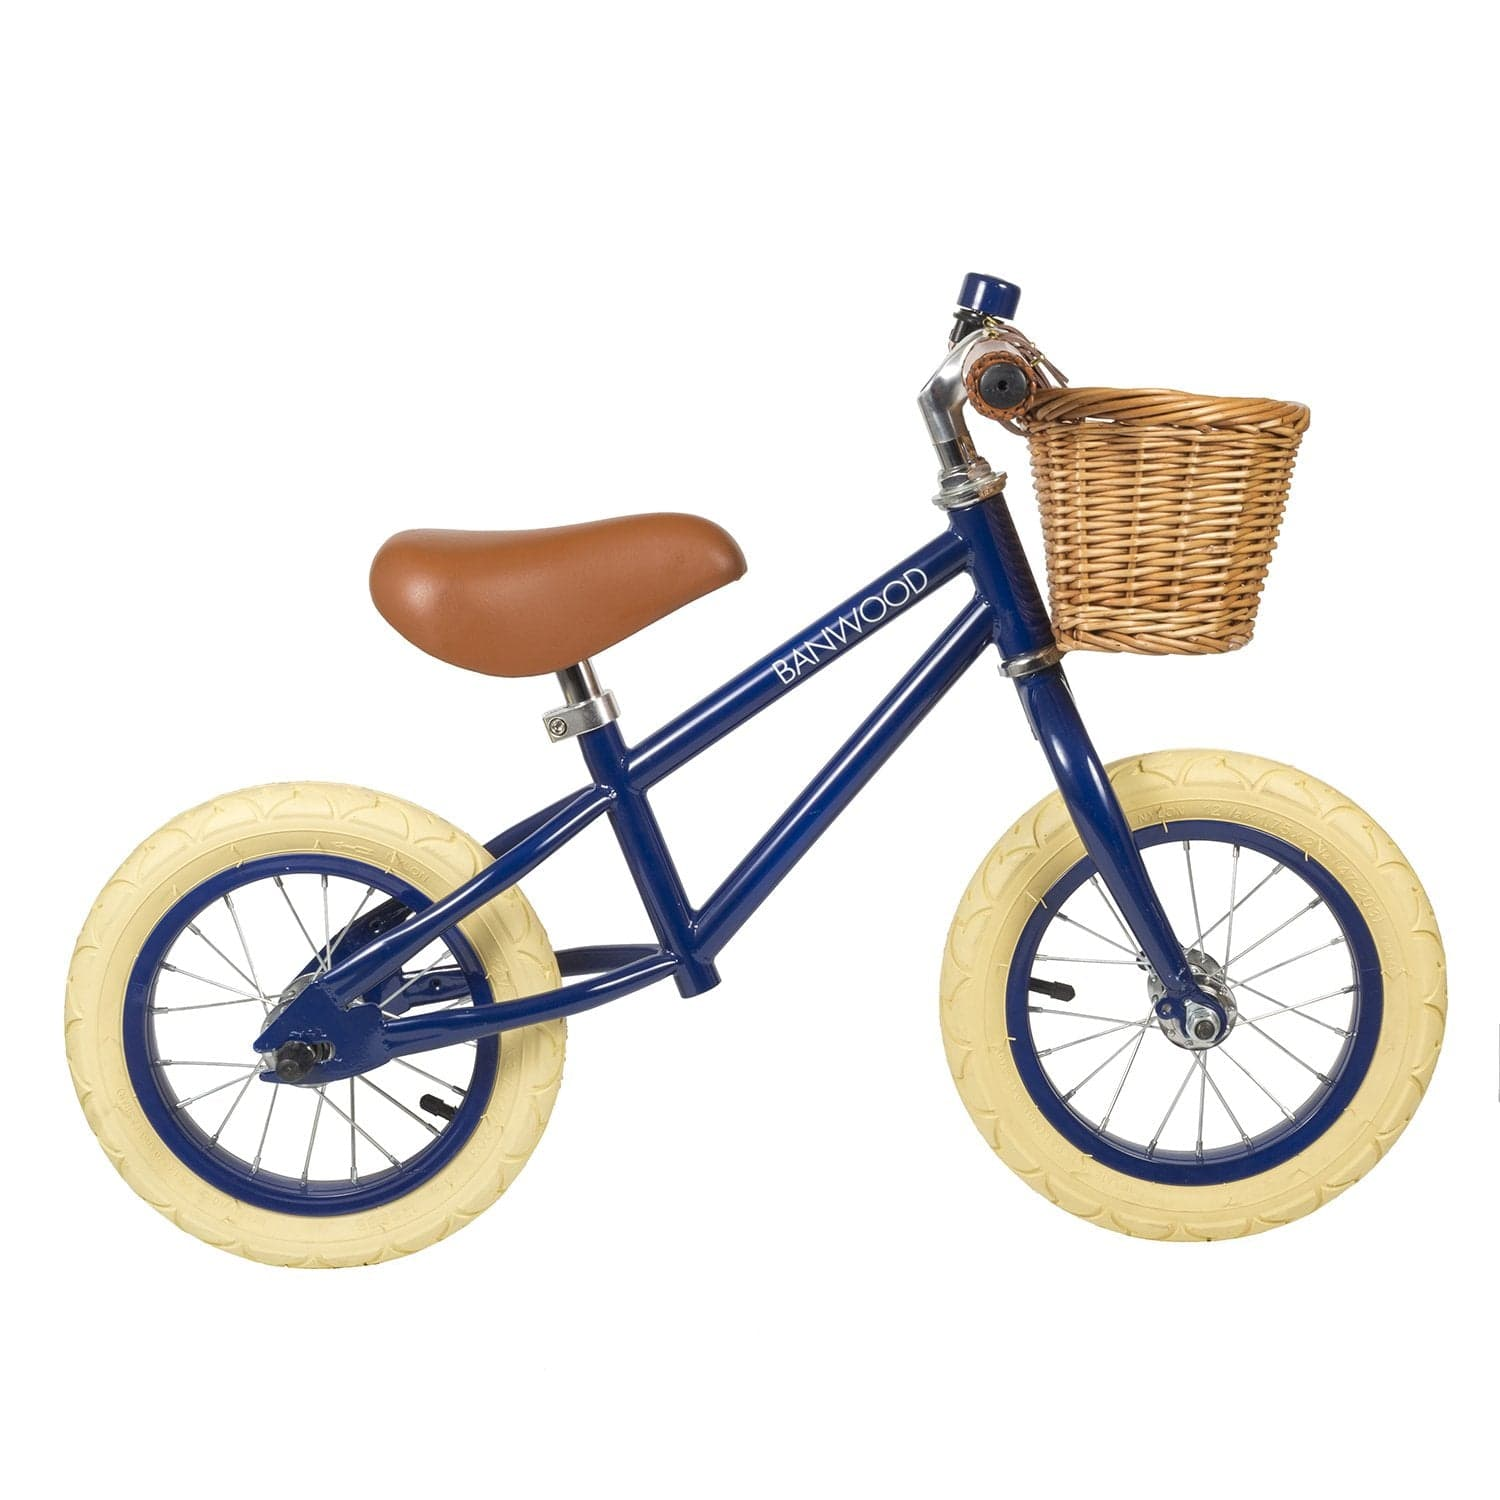 BANWOOD FIRST GO BALANCE BIKE, NAVY BLUE - Hello Little Birdie